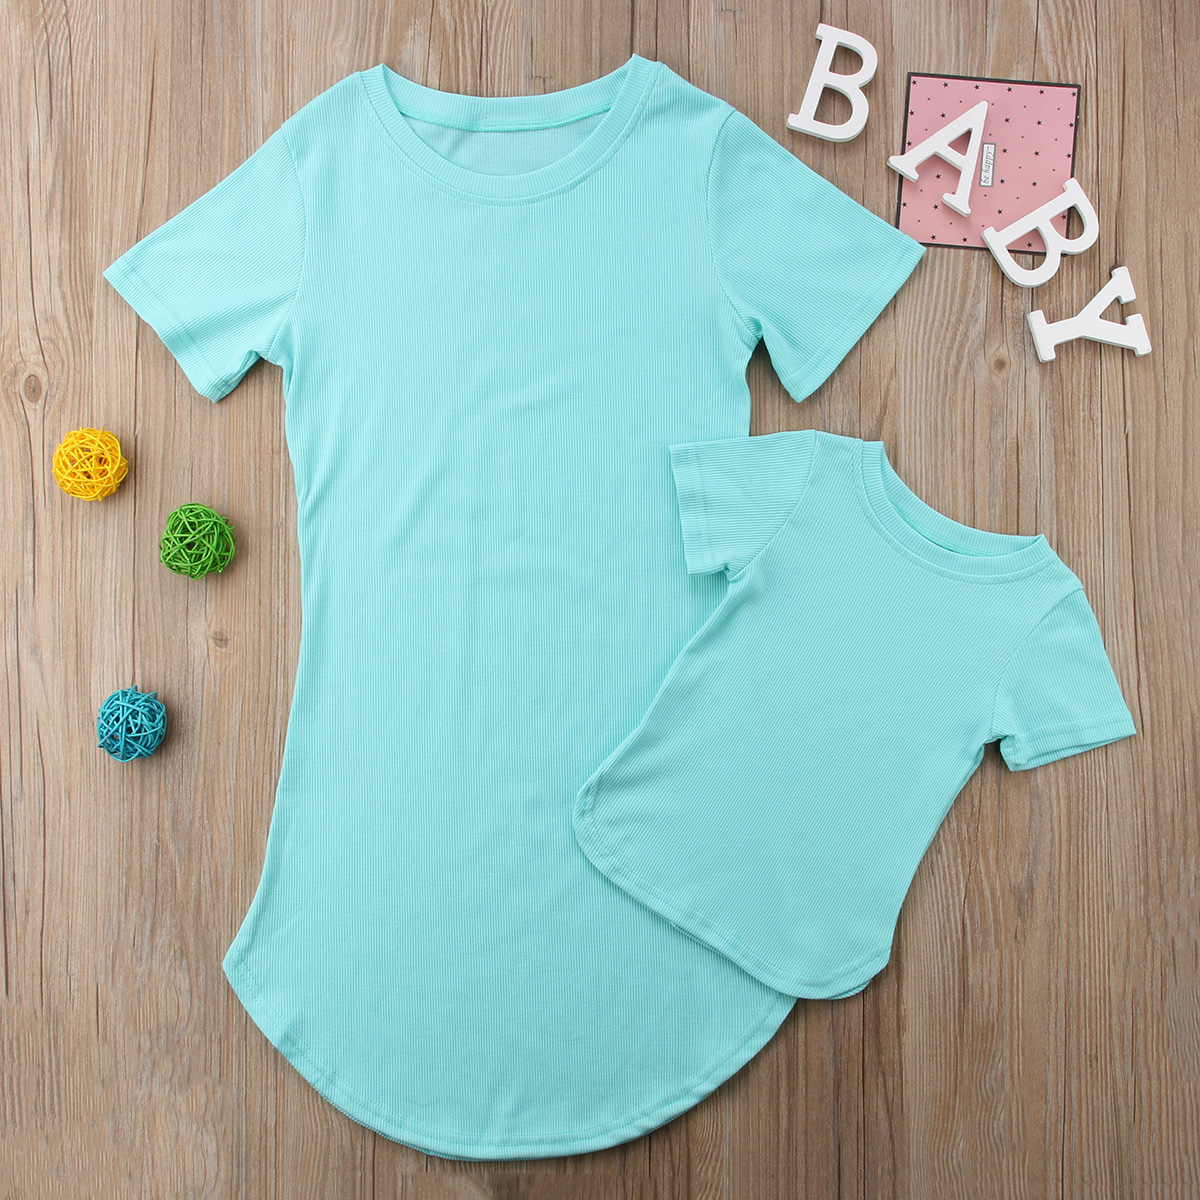 HTB1nr8tKf5TBuNjSspcq6znGFXa2 2019 Summer Mom Daughter Short Sleeve T shirt Dress Family Matching Outfits Baby Kid Women Party Dresses Cotton Clothes Dropship